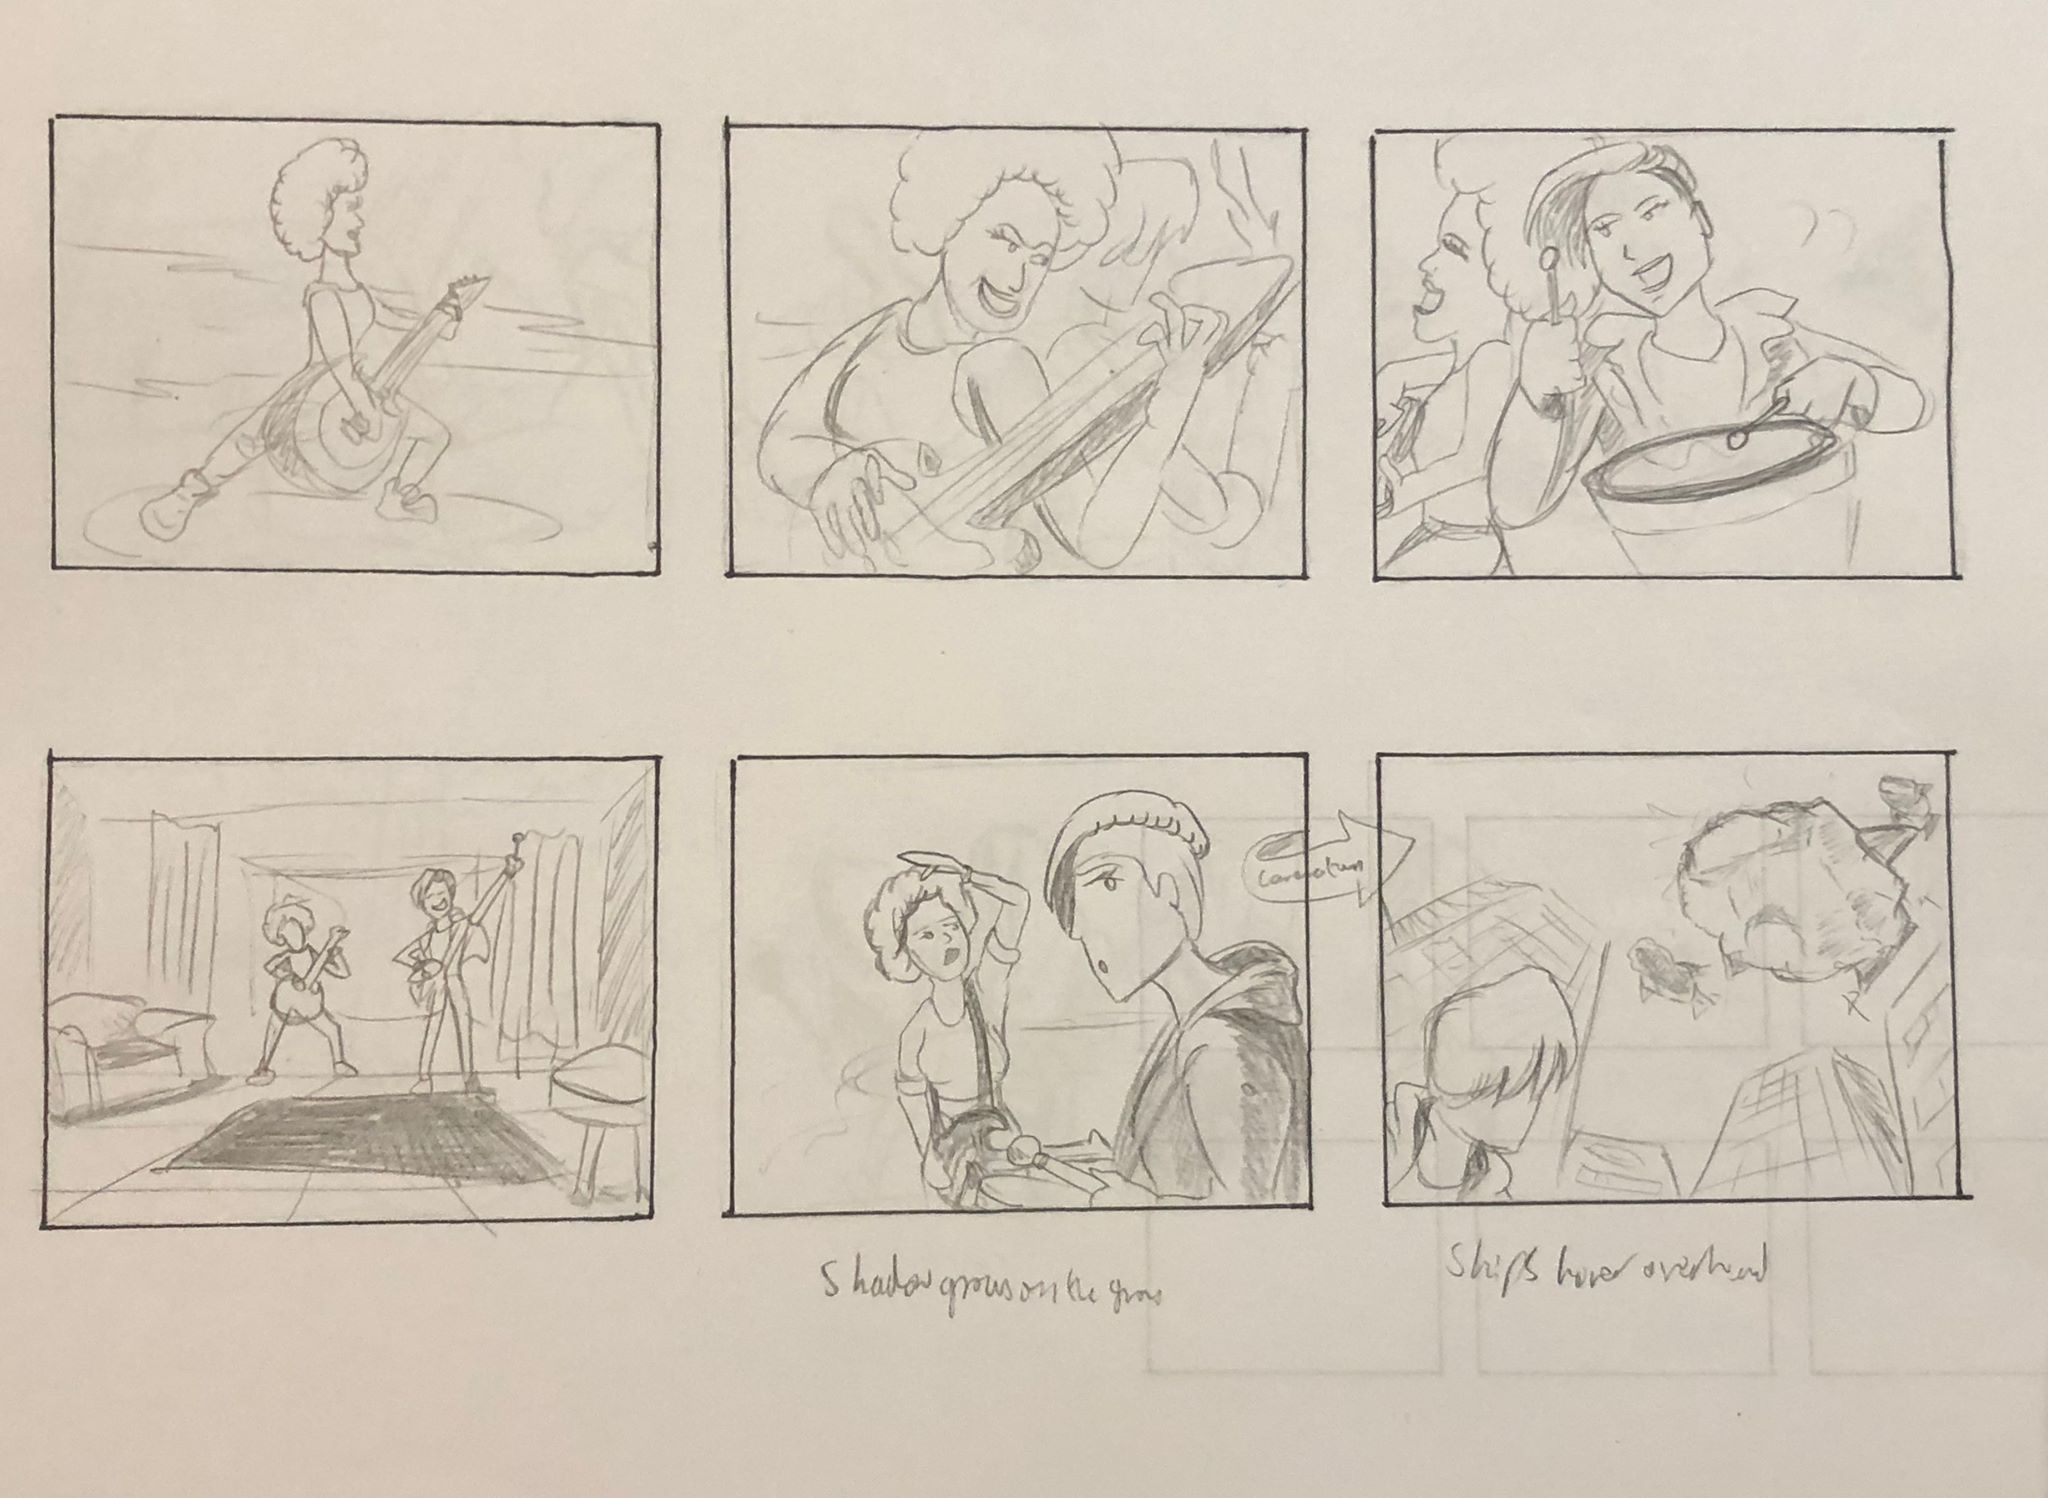 The Original Storyboard - page 3